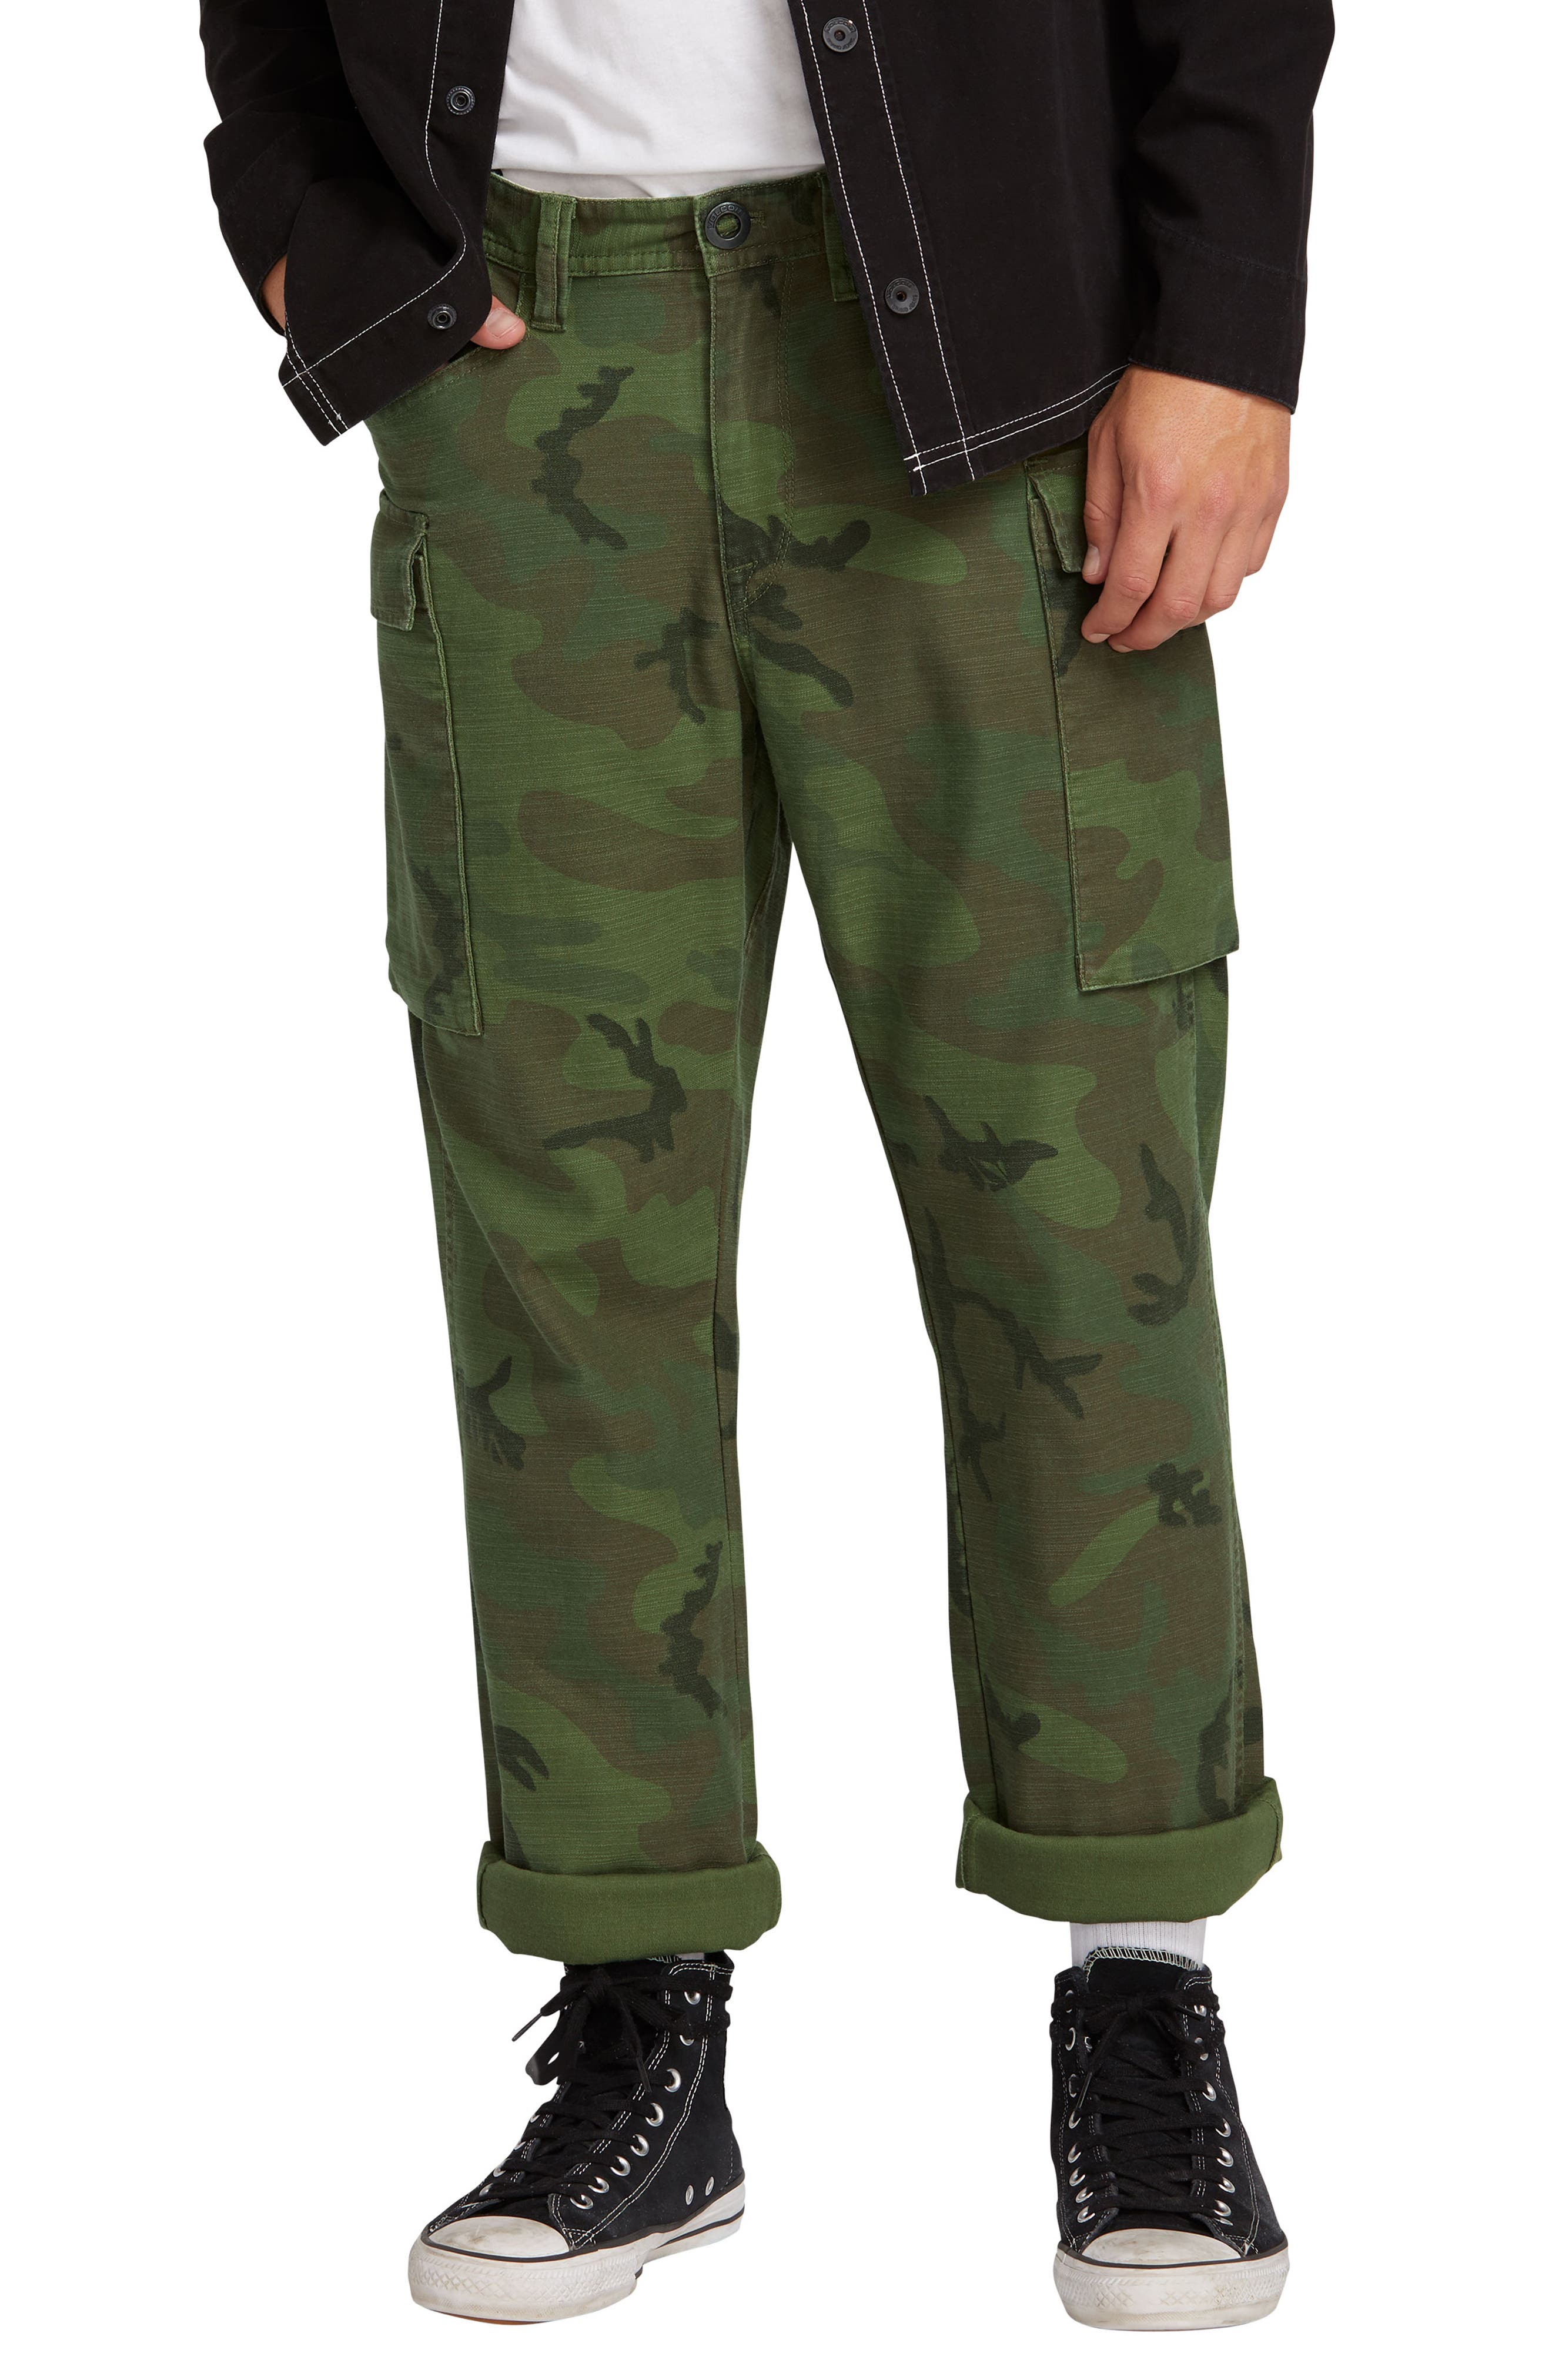 Gritter Cargo Pants,                             Main thumbnail 1, color,                             CAMOUFLAGE